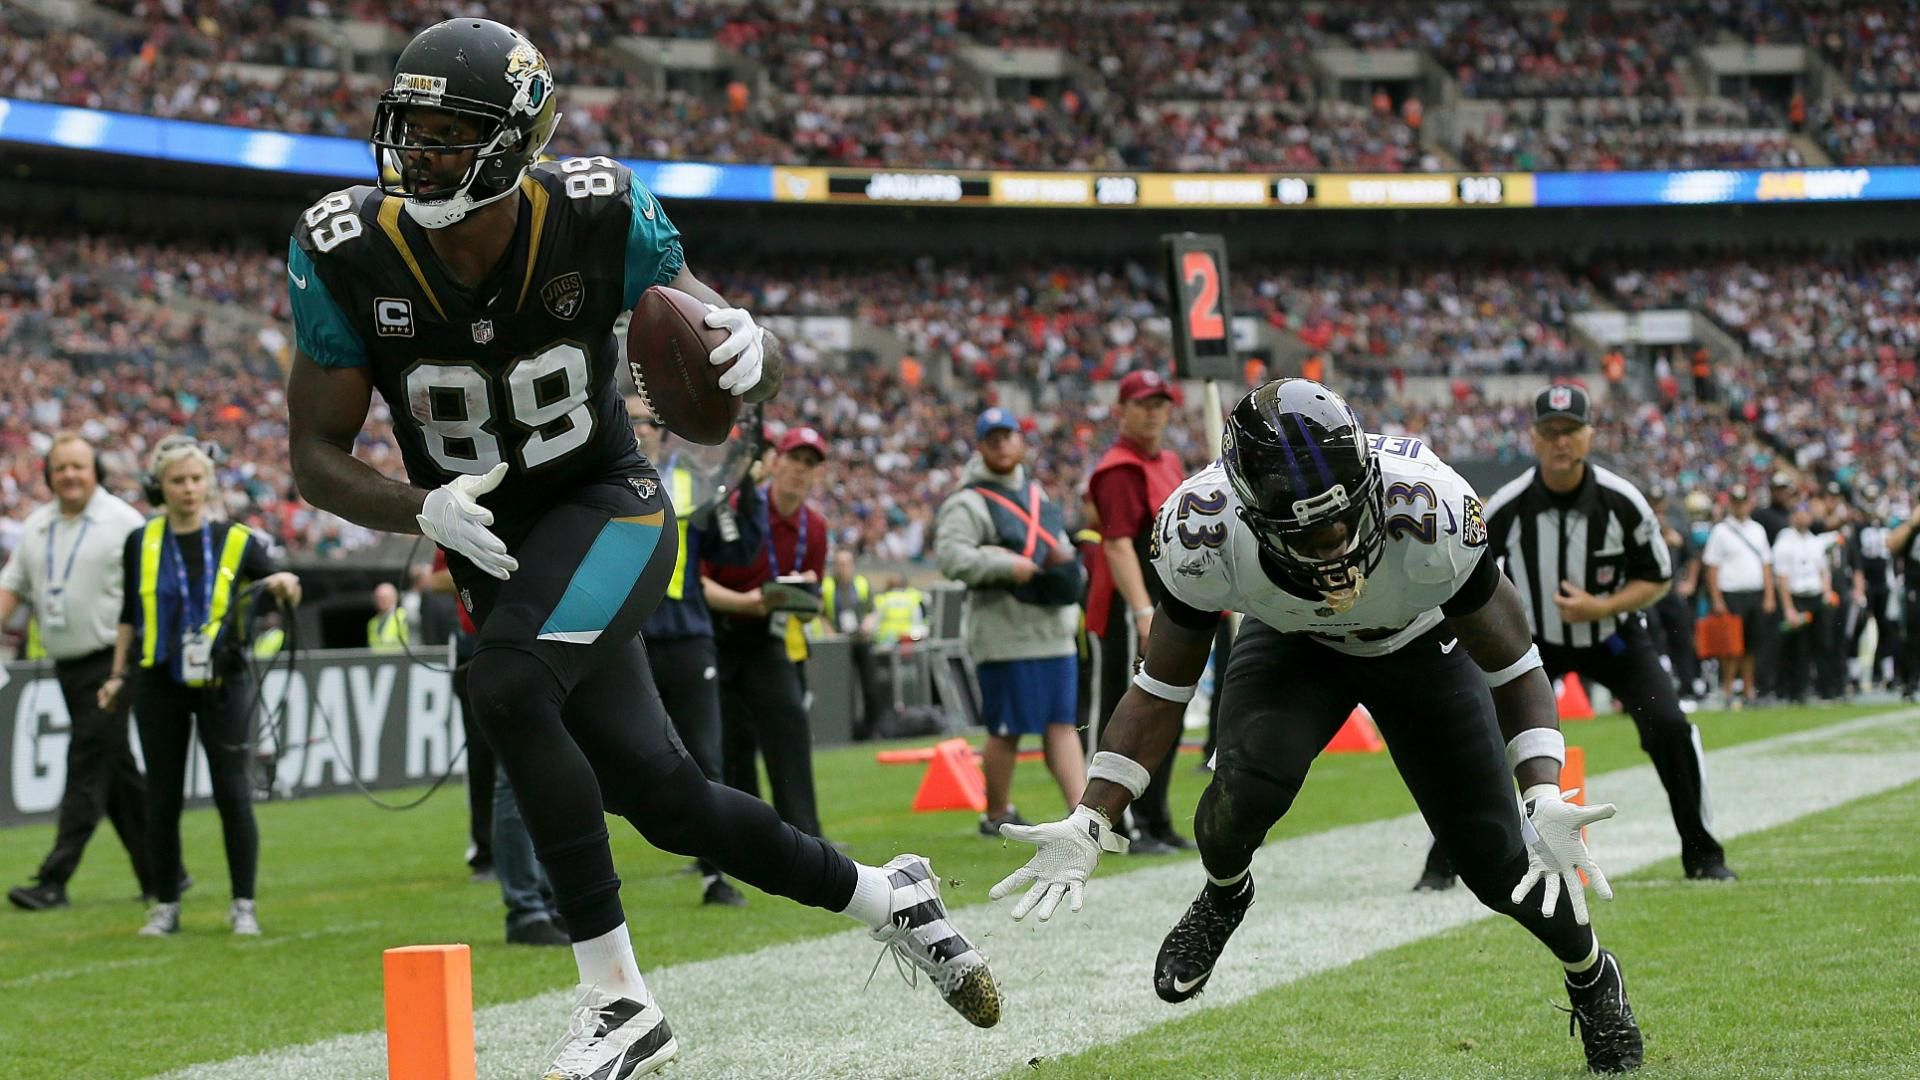 Lewis' 3rd TD of game makes Jags history